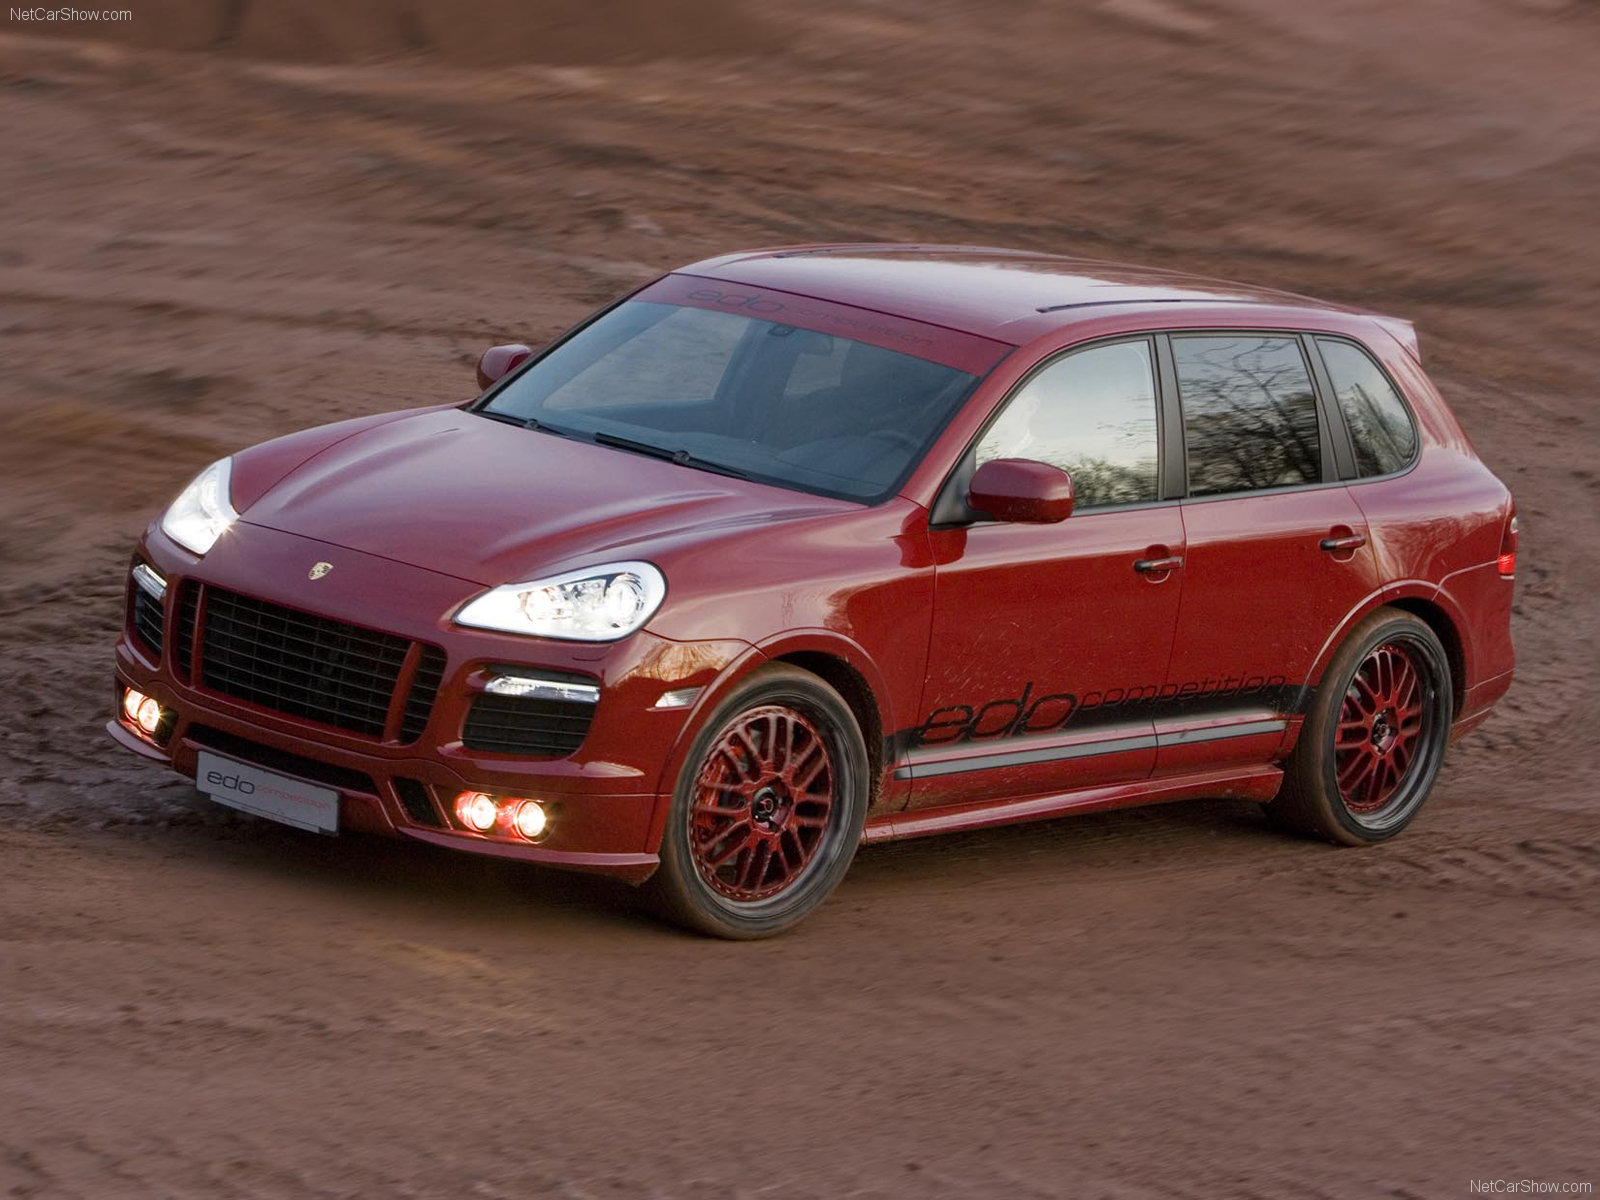 Edo Competition Porsche Cayenne GTS photos - PhotoGallery with 10 ...